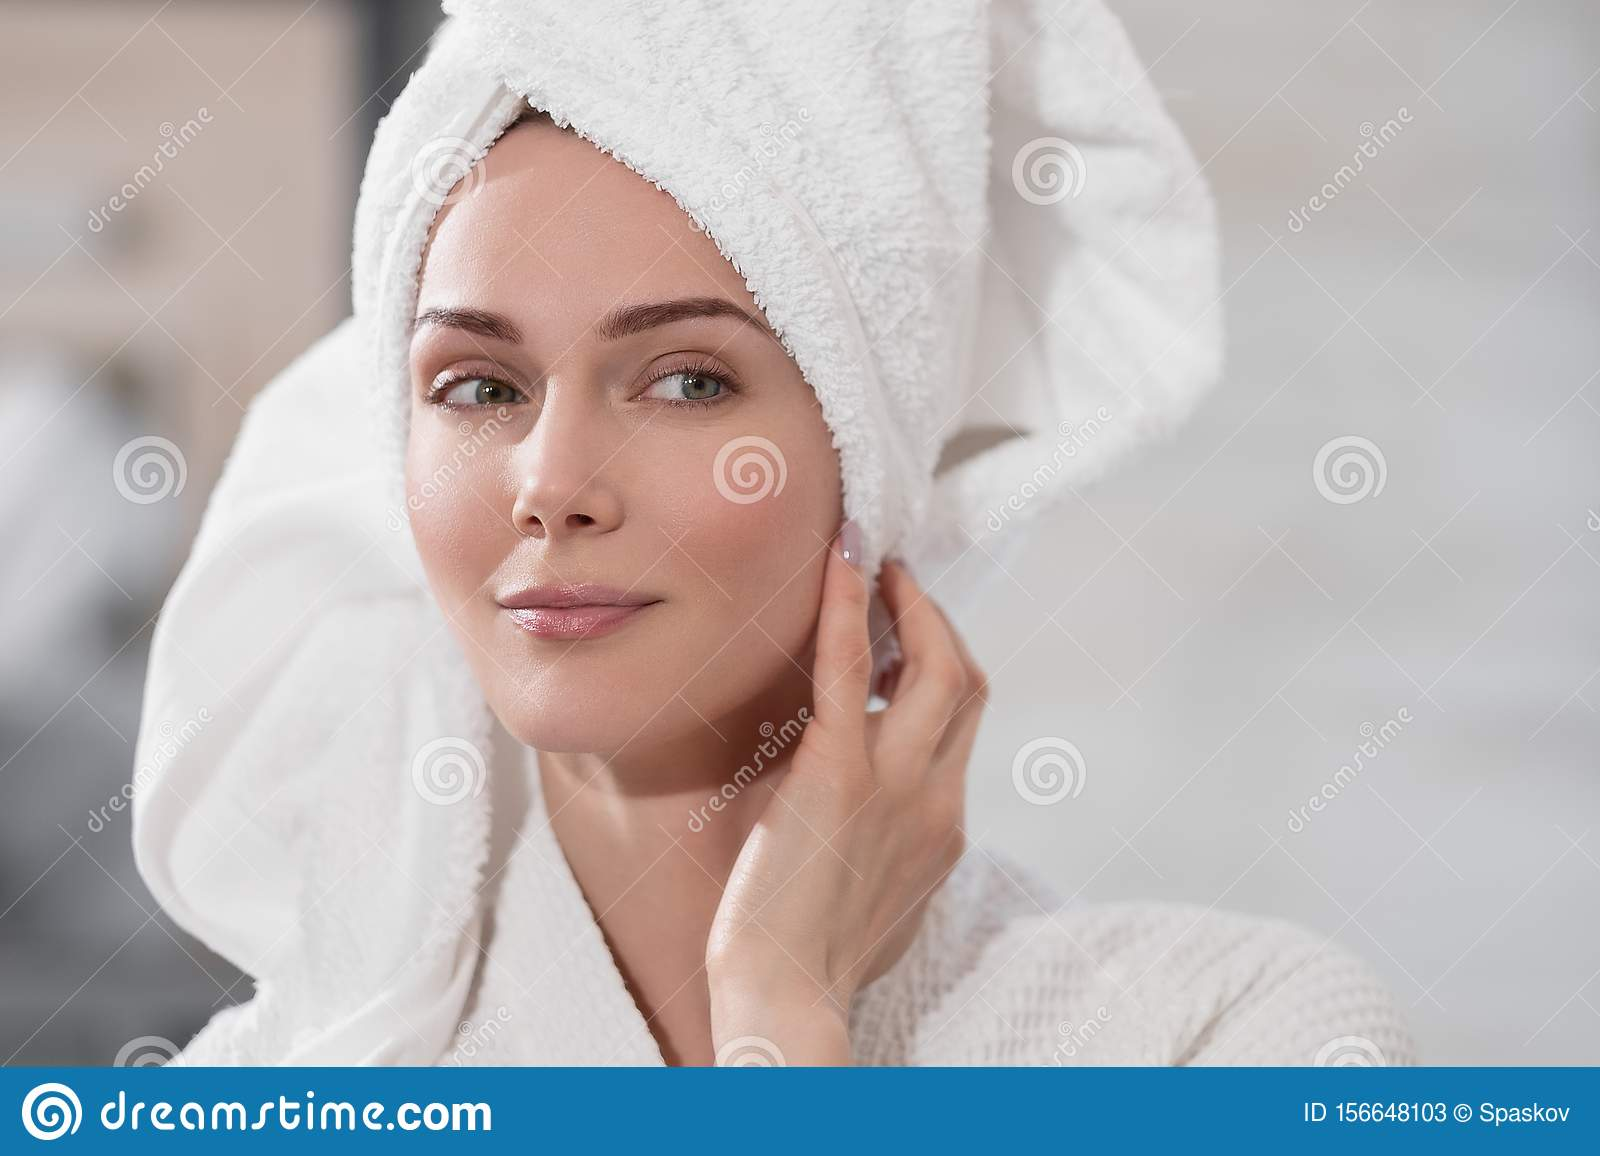 Attractive middle-aged blond woman with white towel on her head and in bathrobe standing in the bathroom by the mirror